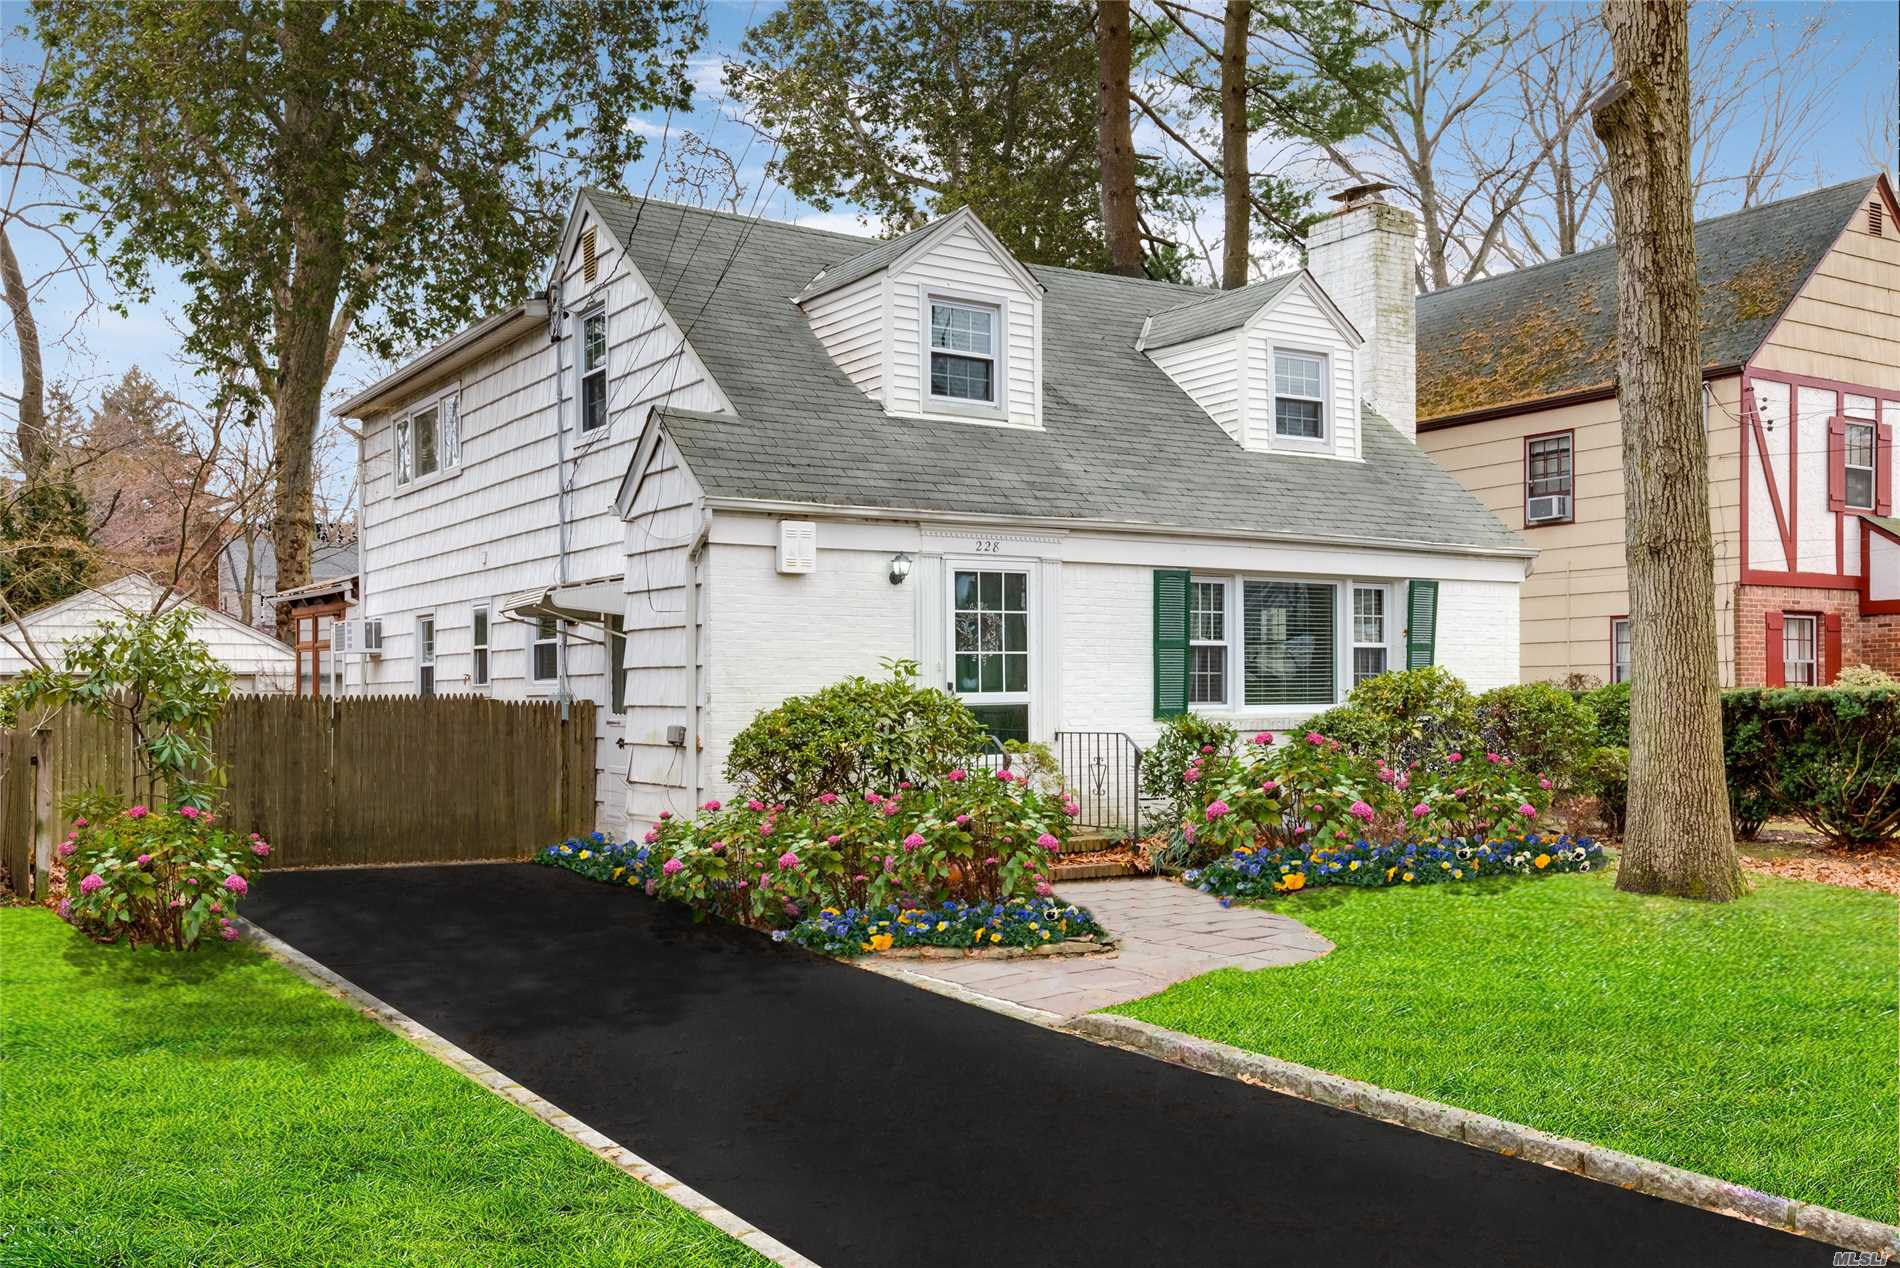 One Of A Kind Expanded Cape On Dead End Street In The Heart Of The Elm/Maple Area. Beautiful Hw Floors Throughout. Extended Chalet Like Family Room W/ Fpl And Wall To Wall Windows Overlooking Private Yard. 2 Fireplaces. Lg Fdr, Updated Baths, Master Br W/ 3 Double Closets. 3 Skylites, Fully Fin Basement W/Ose. Low Taxes!!